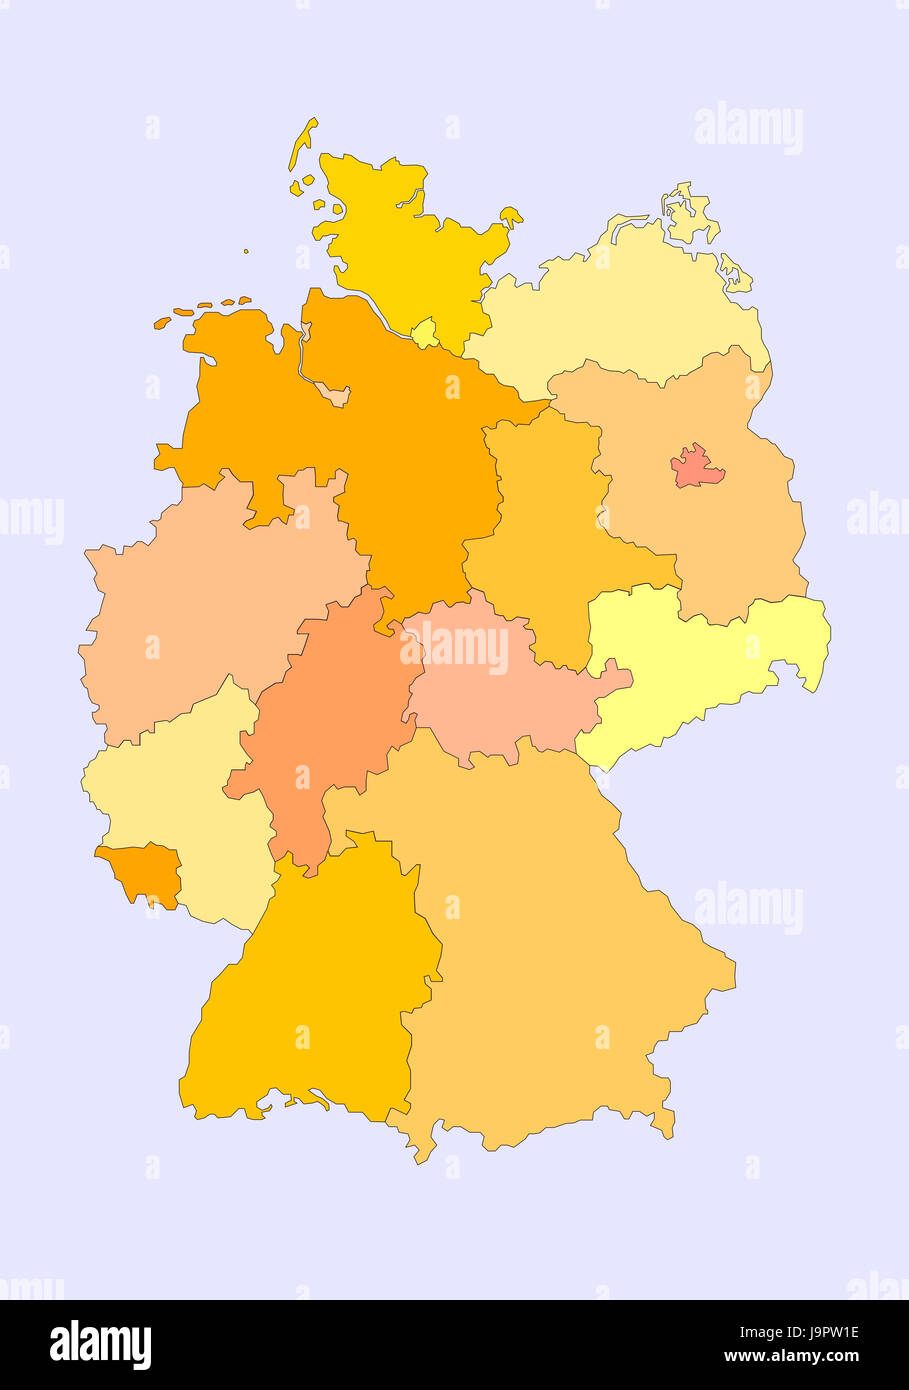 Computer GraphicsGermanymapfederal States Stock Photo Royalty - Germany map federal states